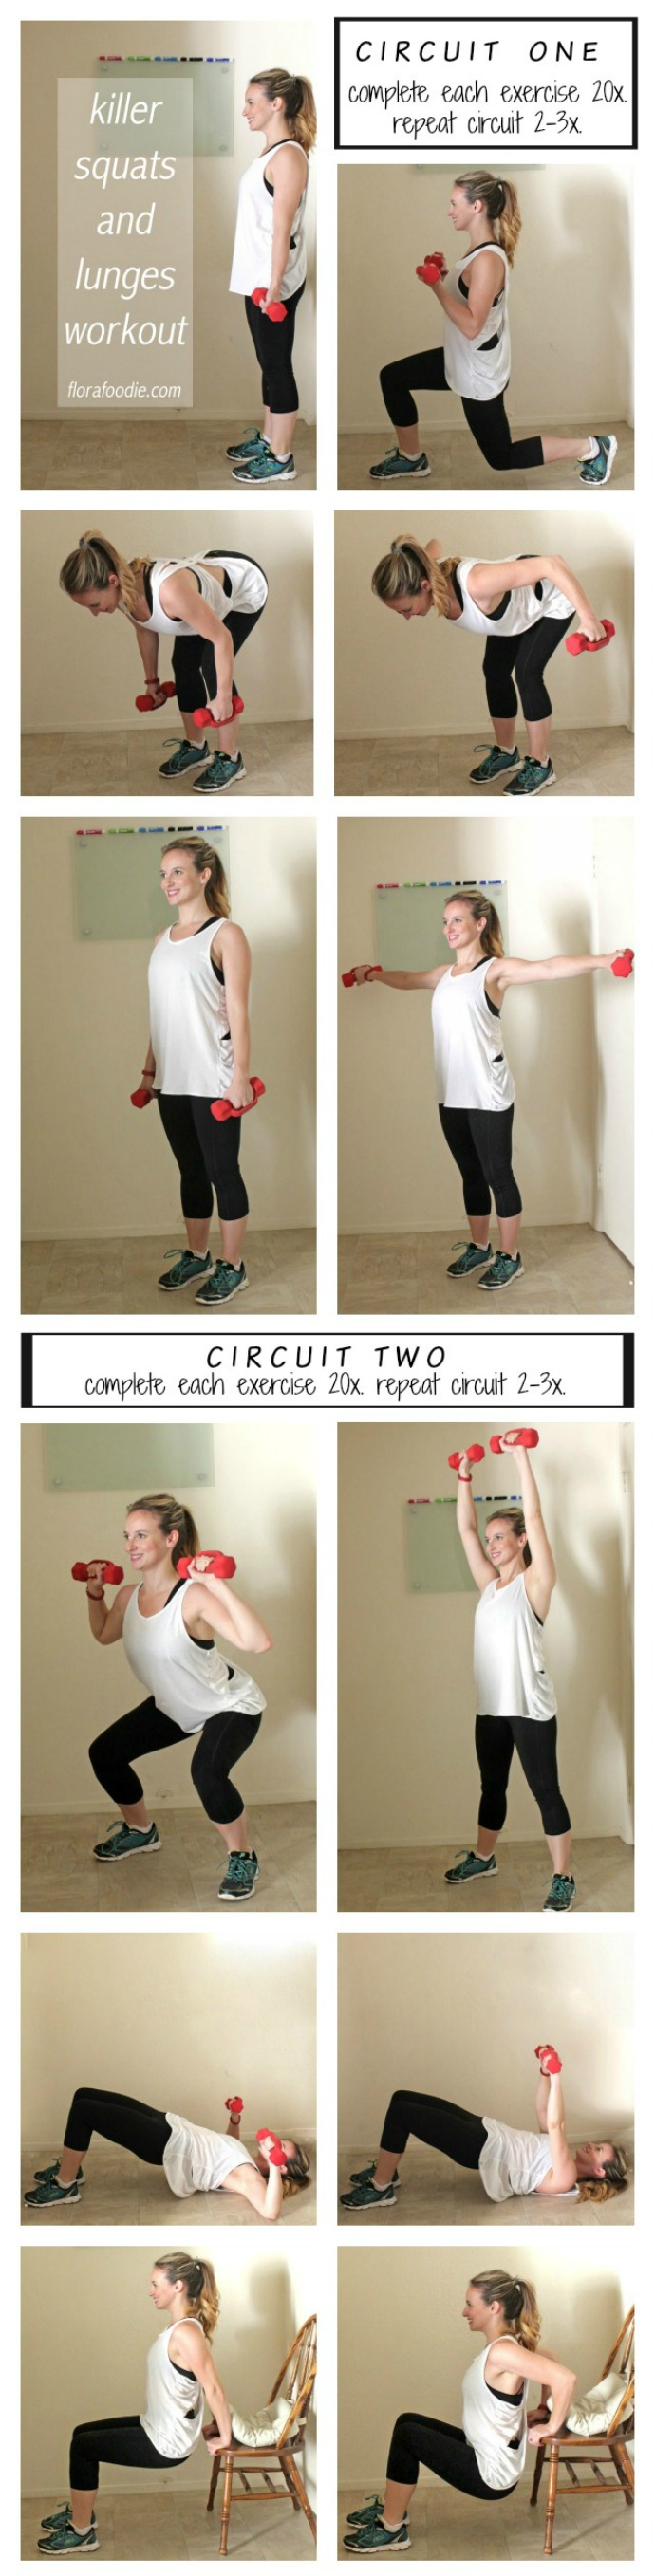 killer squats and lunges workout